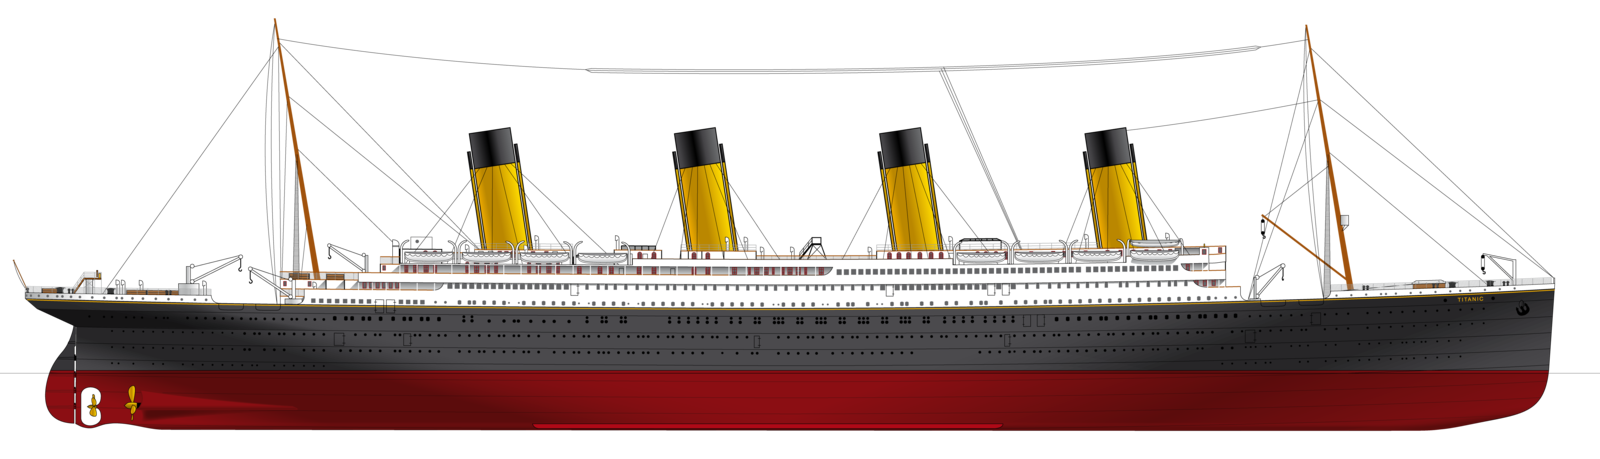 Titanic transparent. Png image with background